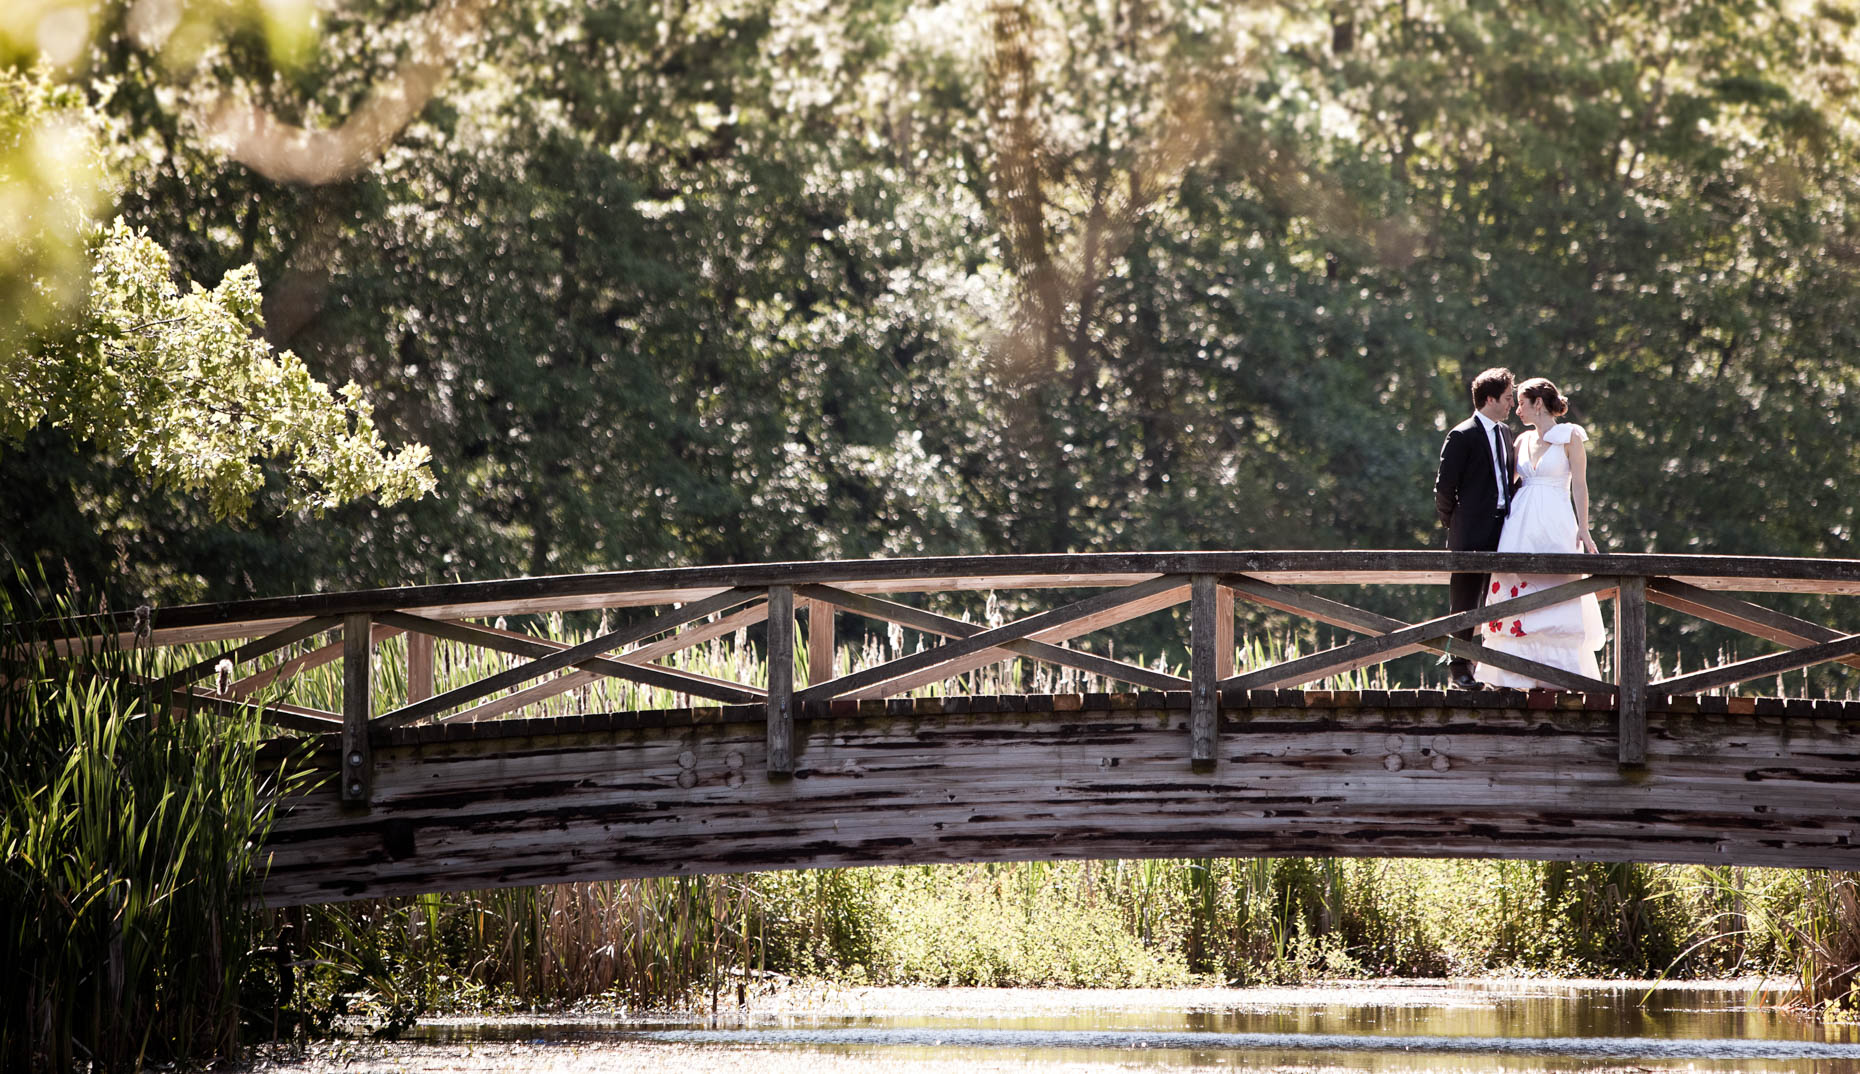 Romantic wooden bridge with bride and groom in Jericho park, Vancouver